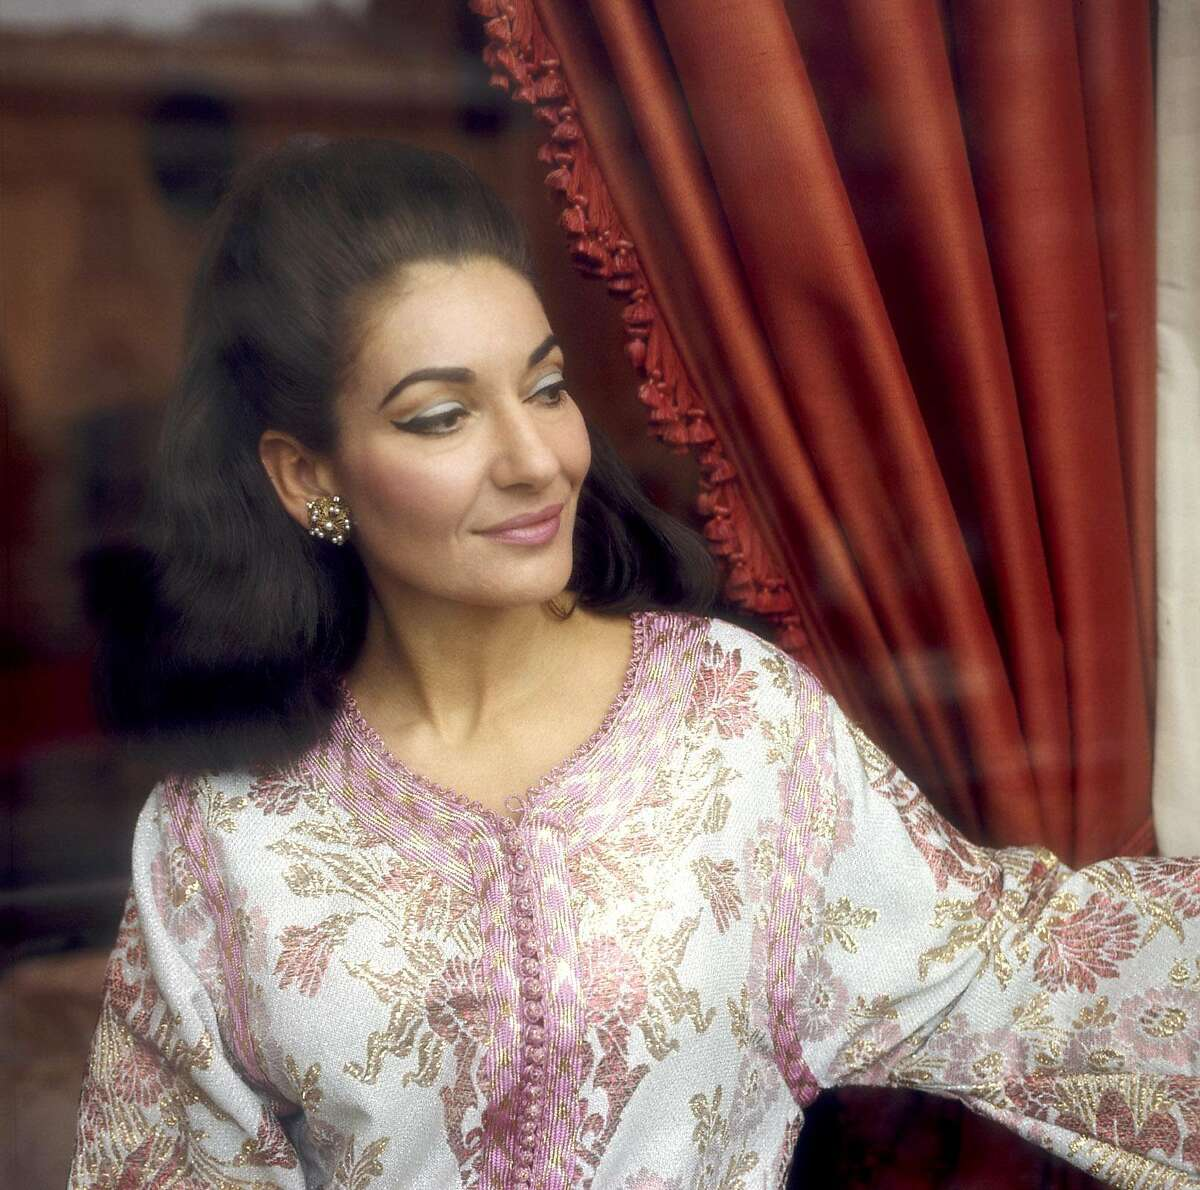 """Maria Callas, seen in this undated photo by Christian Steiner, is one of the star musicians who have faced the camera of what the New York Times called """"the world's premier photographer of divas and conductors."""" Steiner is artistic director of the Tannery Pond chamber music series which welcomes some of today's finest musicians, who also happen to be Steiner's friends. (AP Photo/Christian Steiner)"""